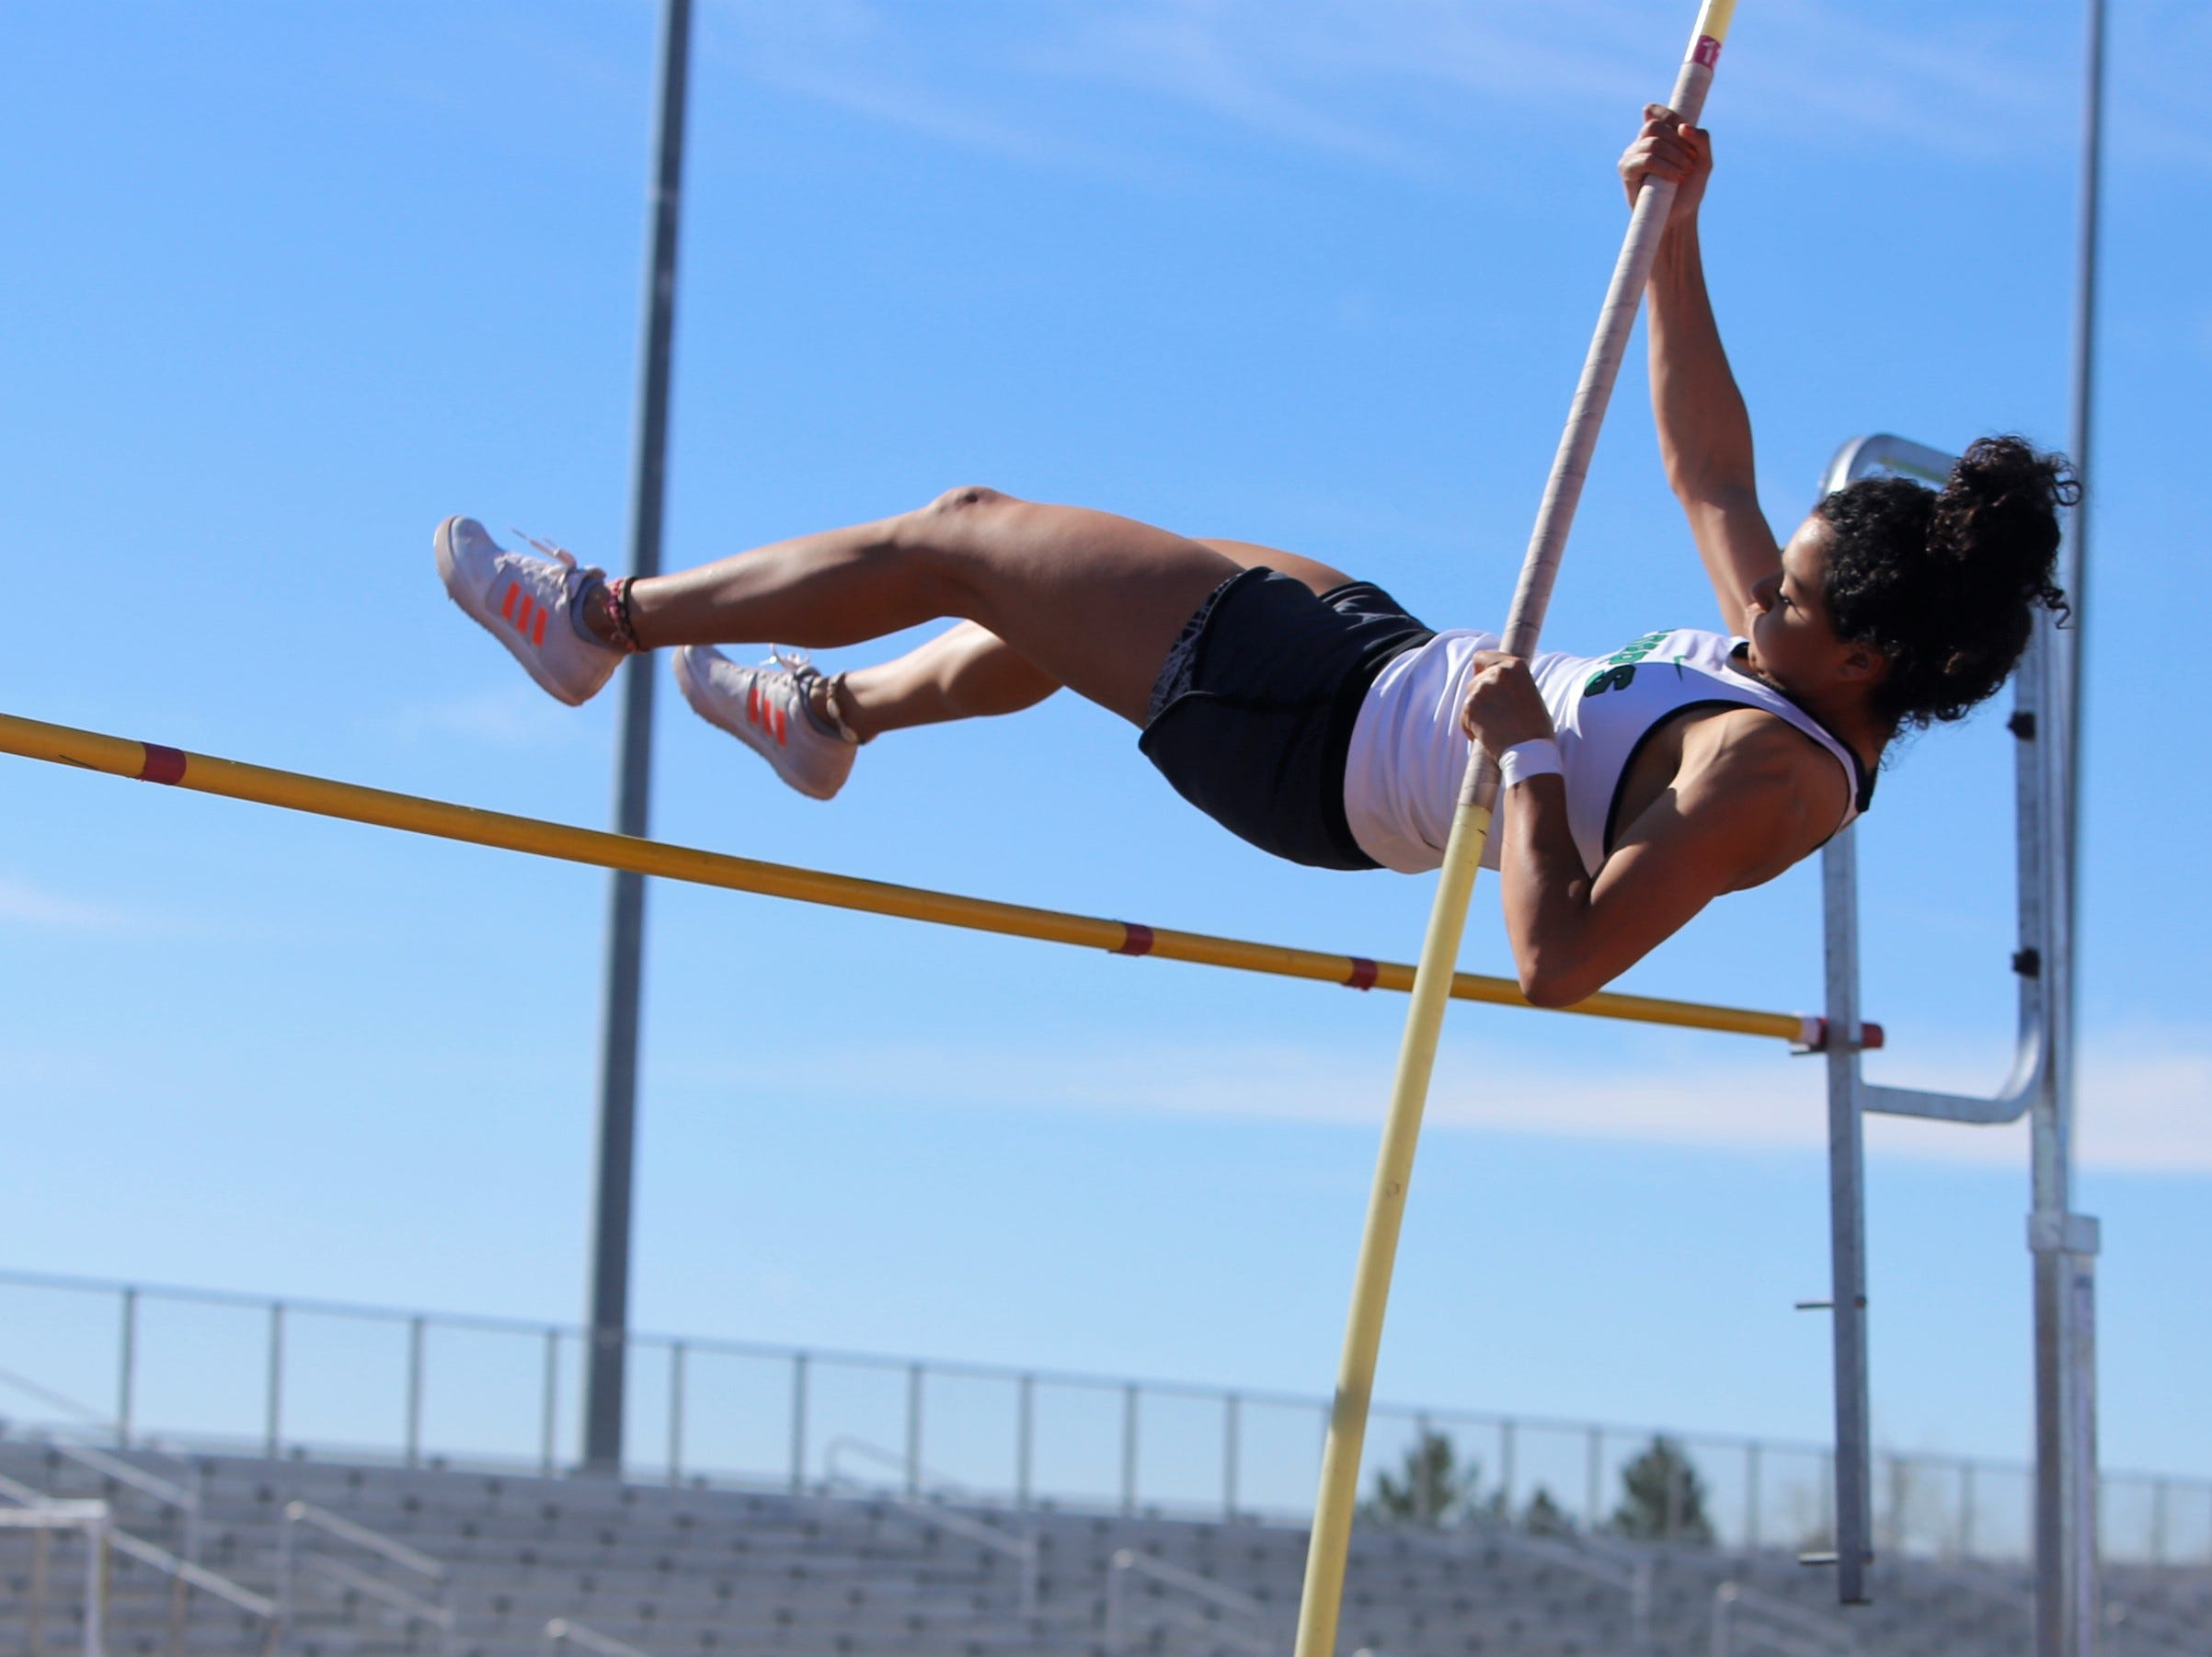 Farmington's Kiara Quezada catapults over the bar in the girls pole vault during Saturday's FHS Invitational at Hutchison Stadium. Quezada won the event with the height of 10 feet, 6 inches.